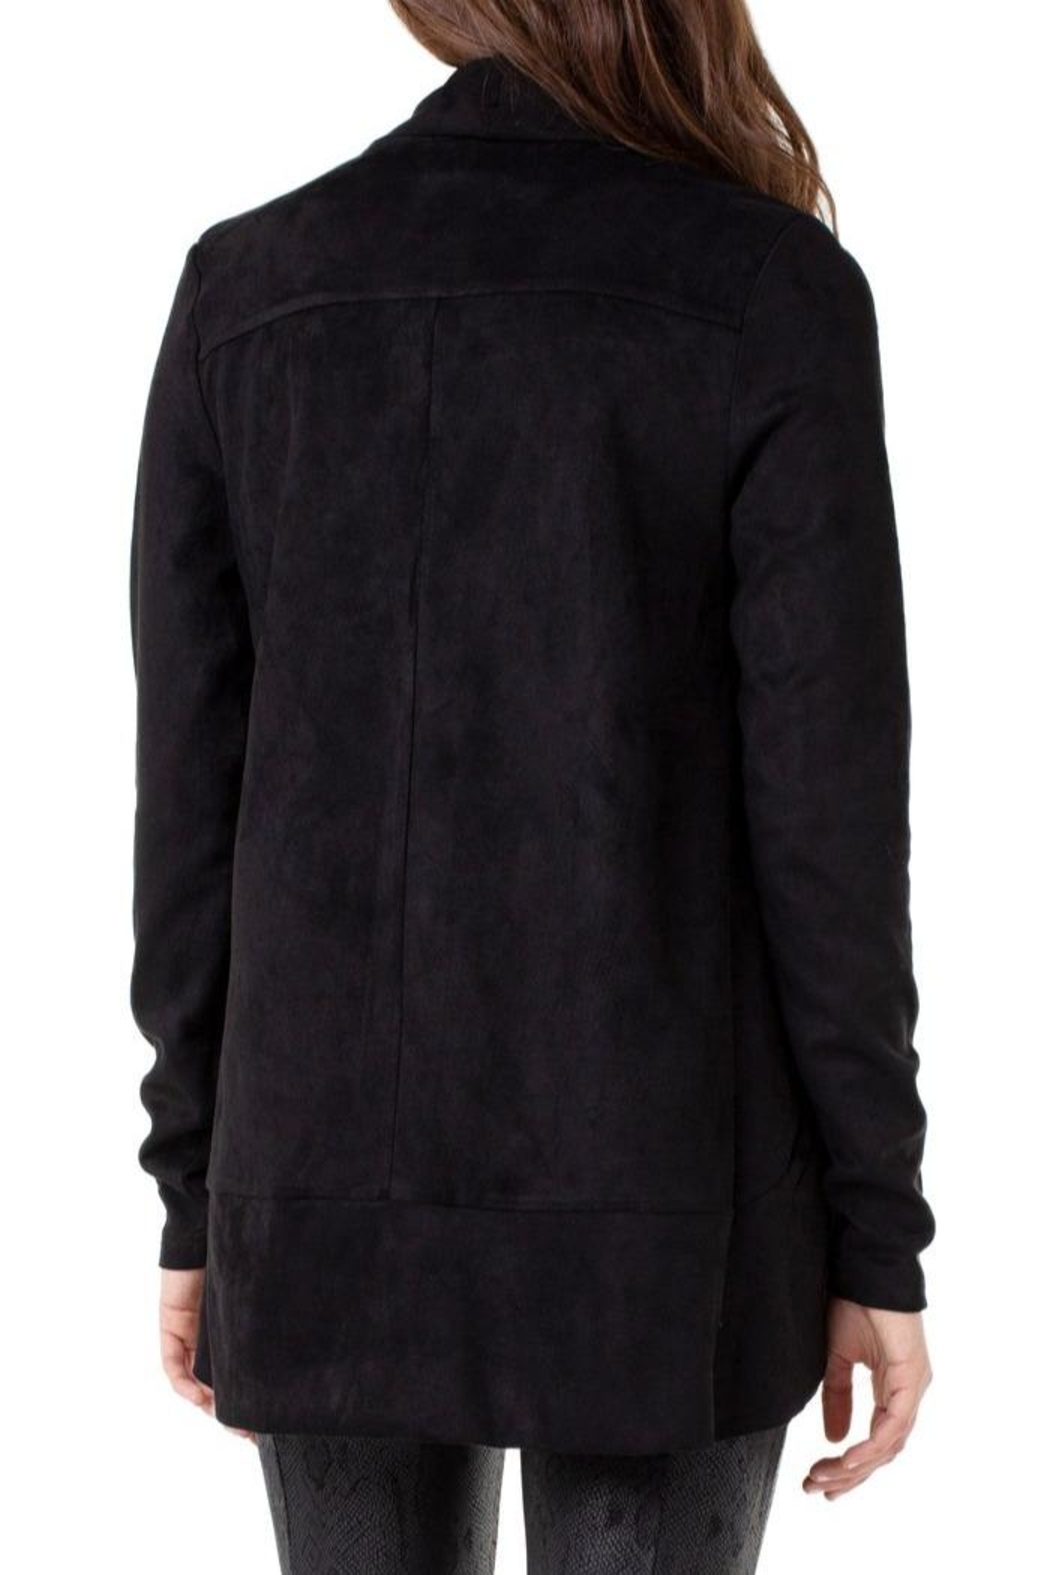 Liverpool Jean Company Shawl Double-Front Cardigan - Front Full Image